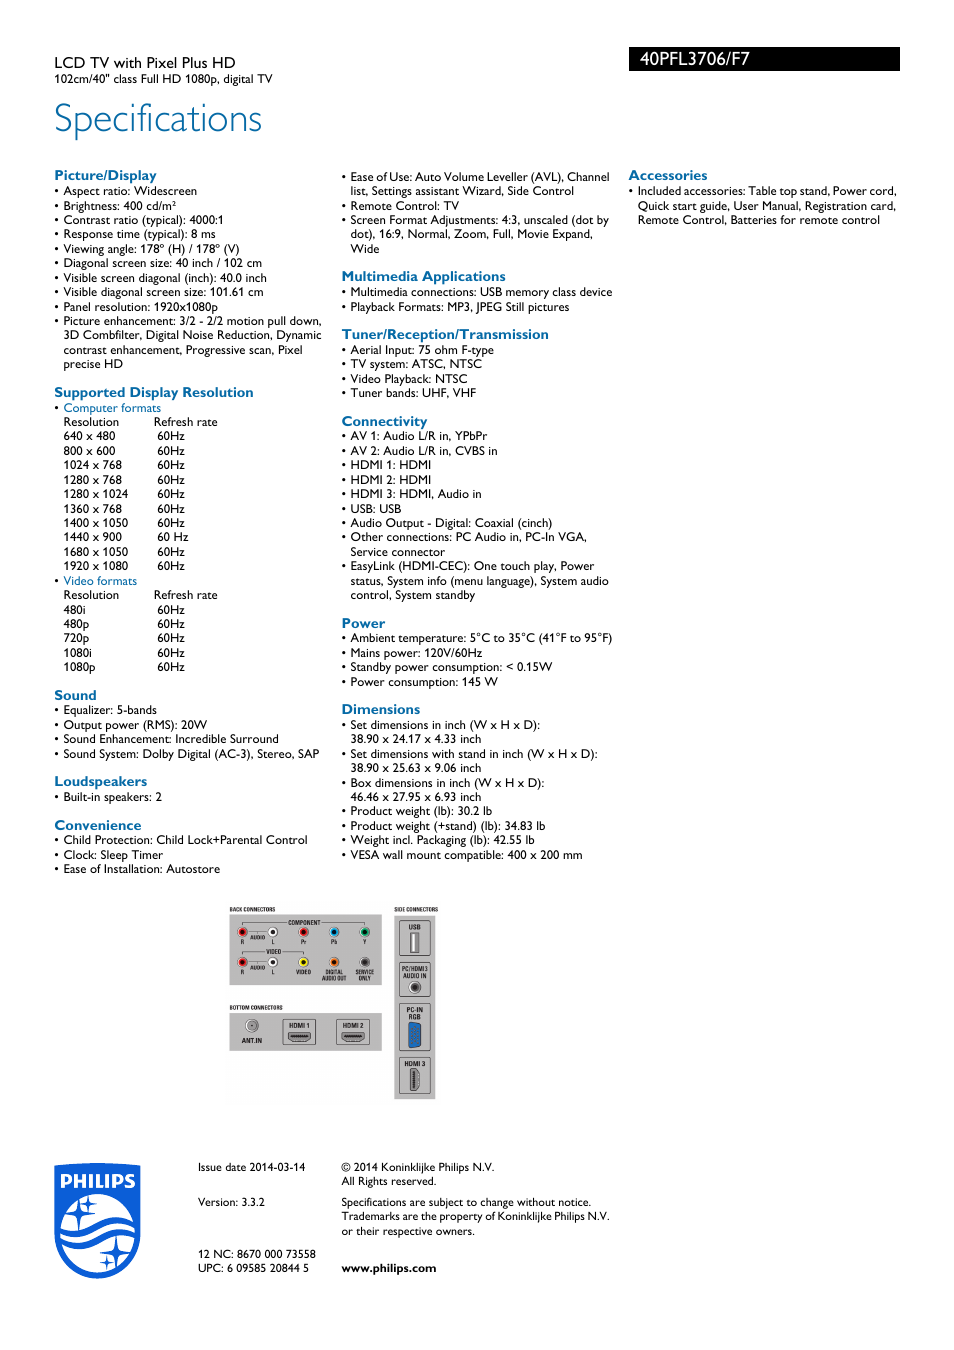 Specifications | Philips 40PFL3706-F7 User Manual | Page 3 / 3